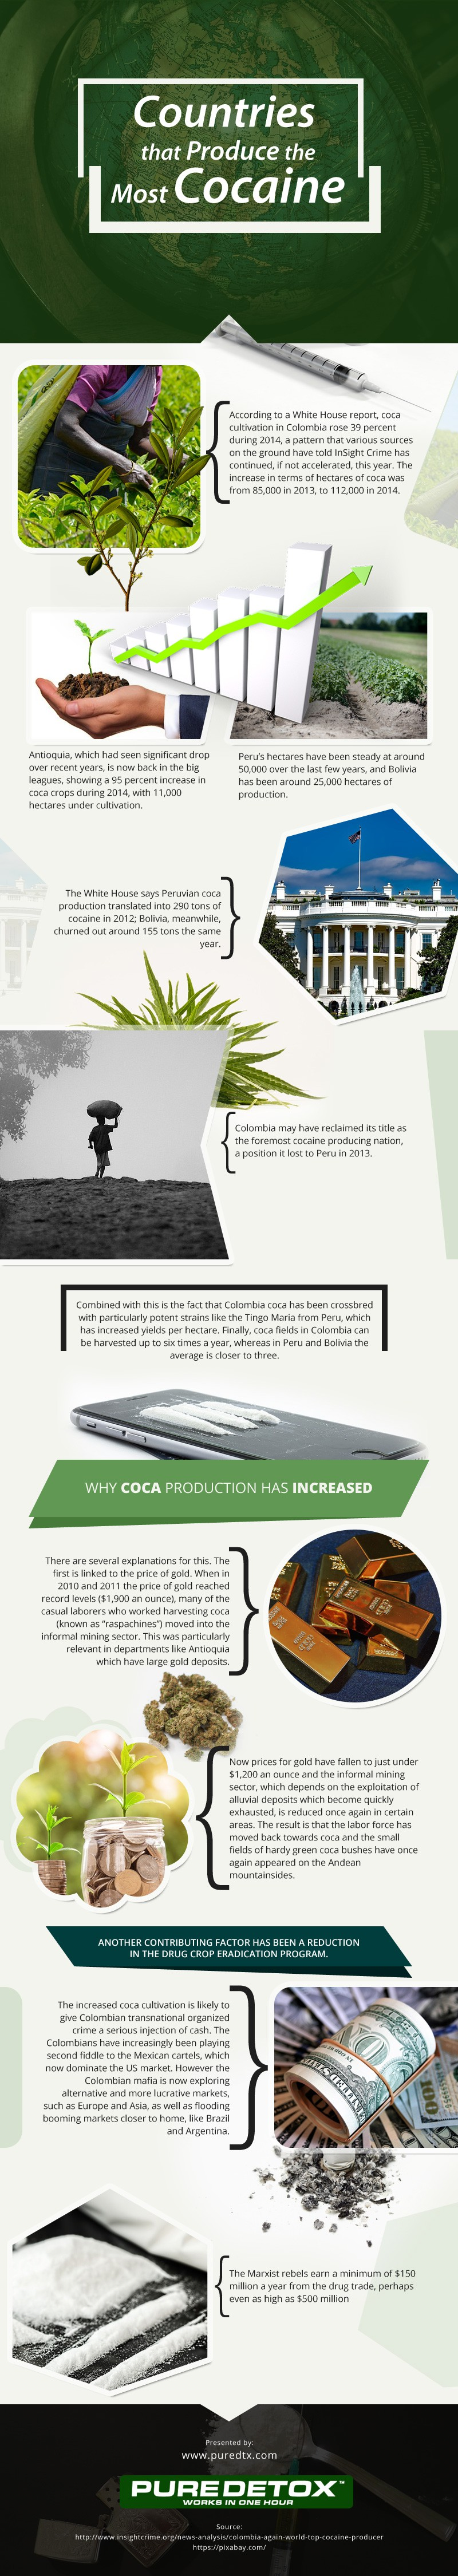 Countries-that-Produce-the-Most-Cocaine Infographic